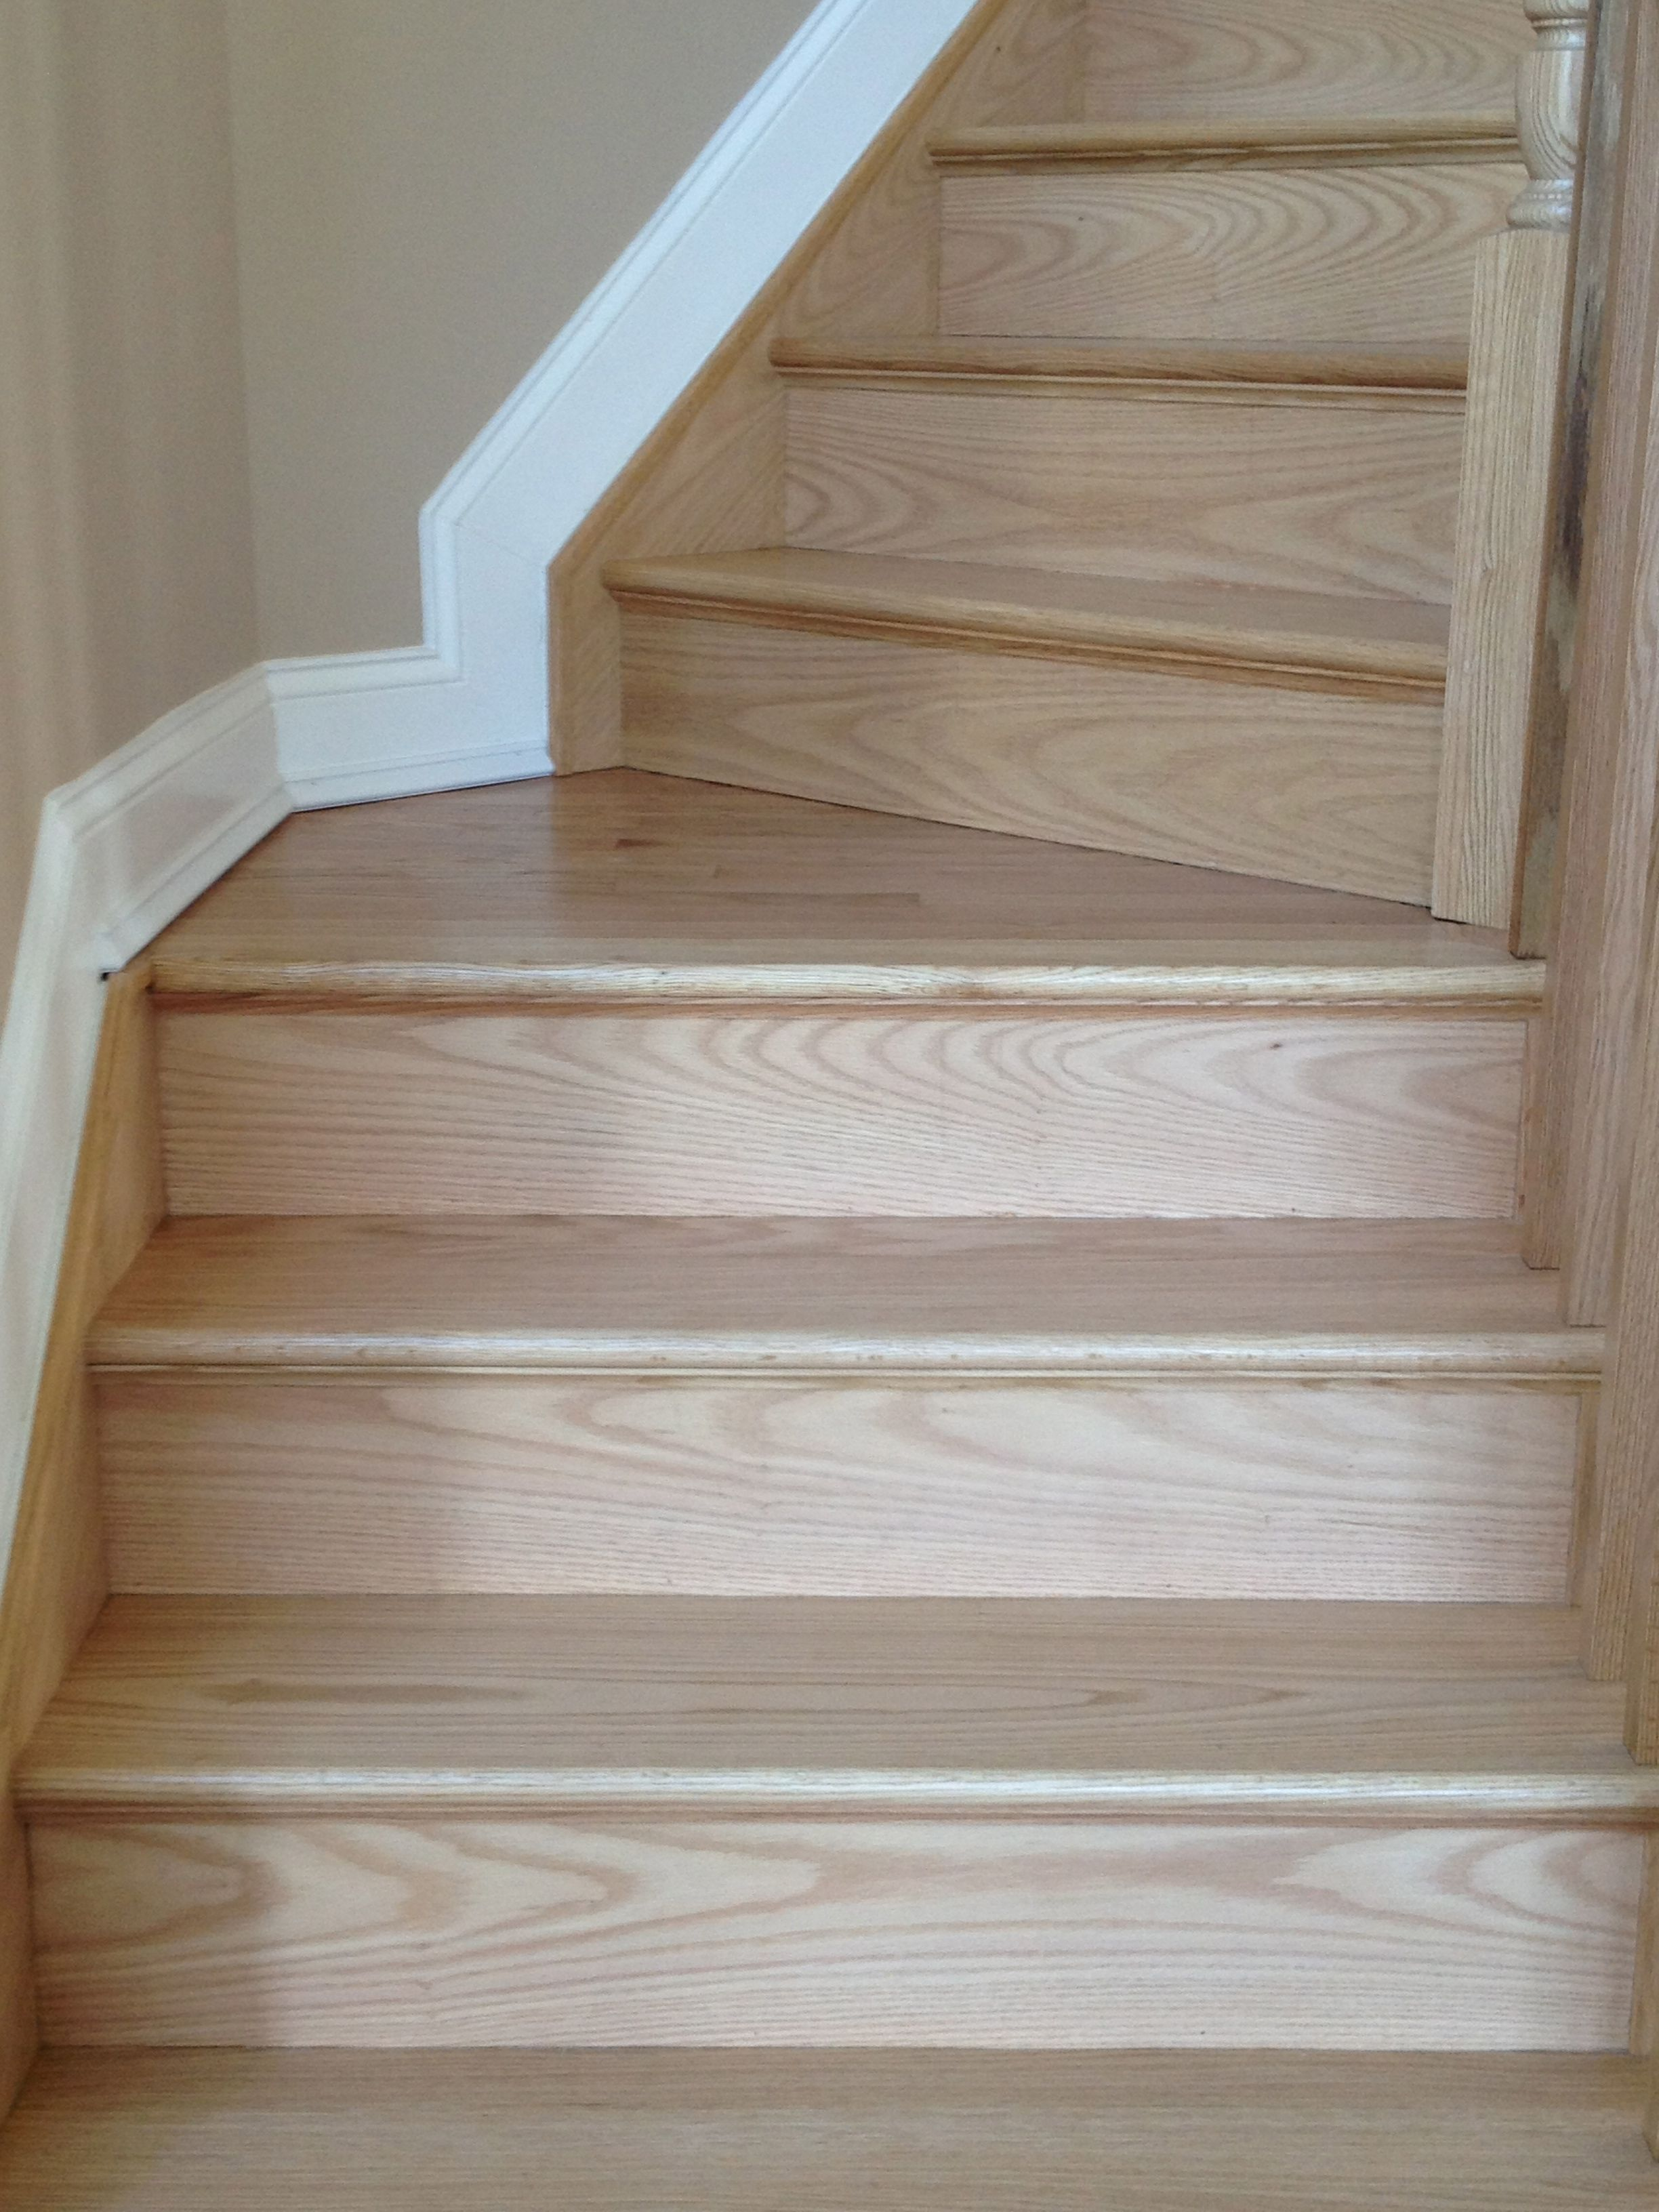 Gorsegner Brothers Hardwood Floors Features Replacement Red Oak   Red Oak Stair Risers   Stair Tread   Stair Parts   Flooring   Stain   Modern Retro